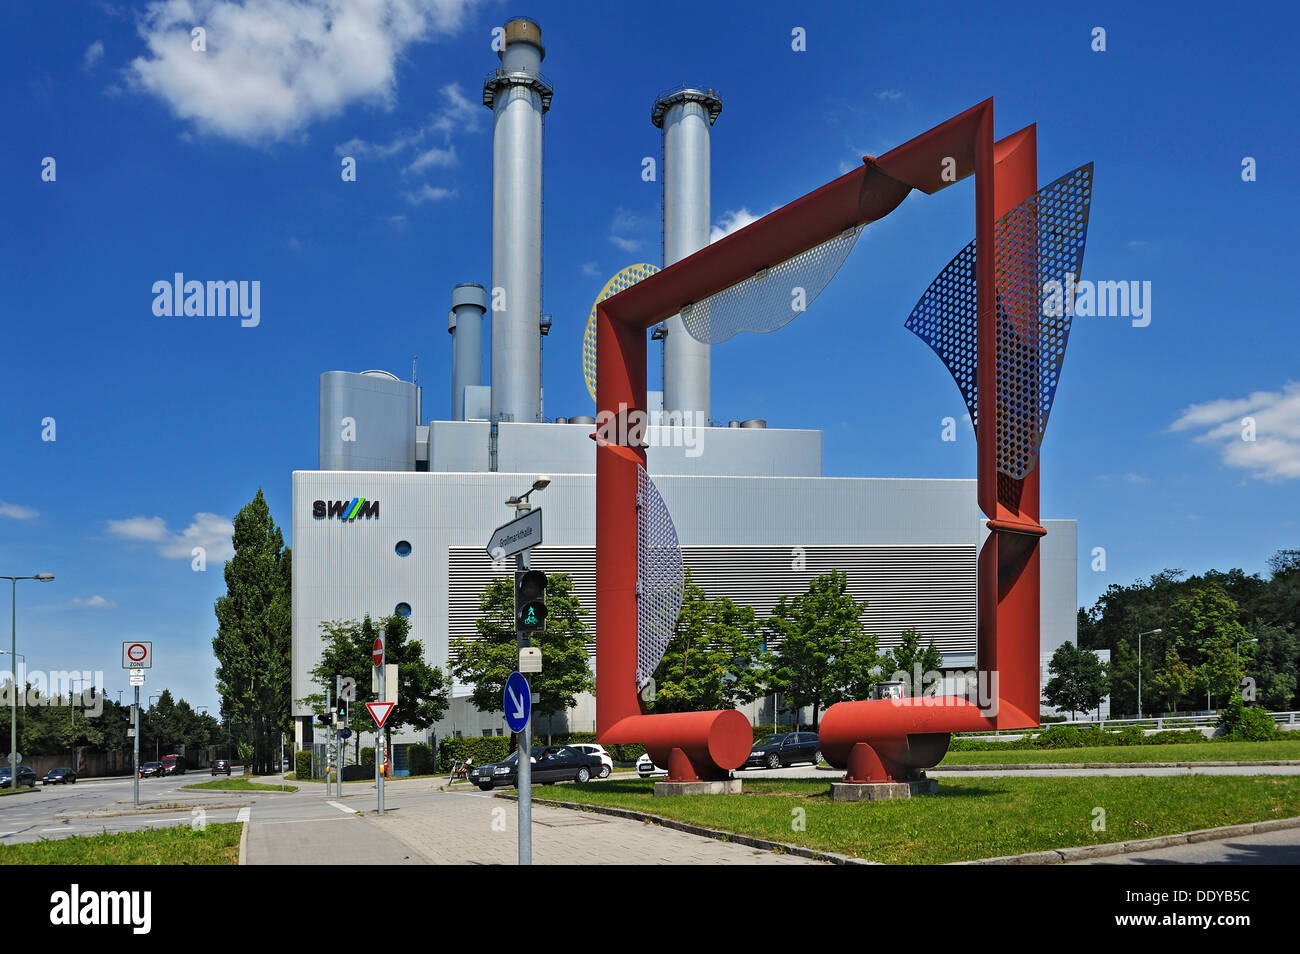 Artwork by Leismueller in front of the co-generation power plant 'Sued', combined heat and power plant operated - Stock Image